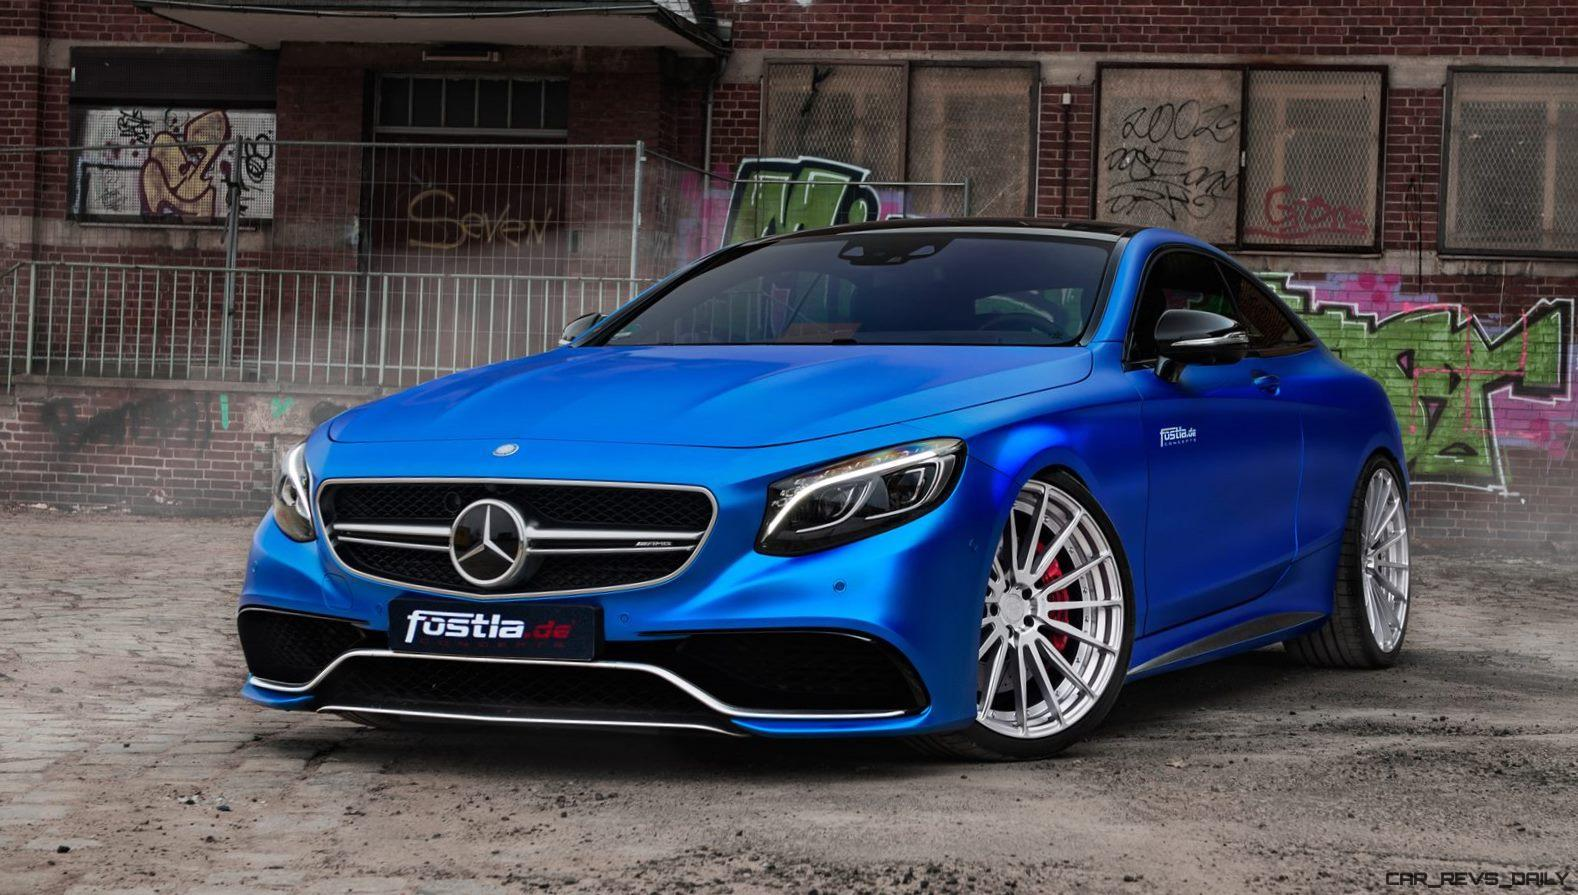 2017 Mercedes Amg S63 Coupe By Fostla De Is Dripping Blue